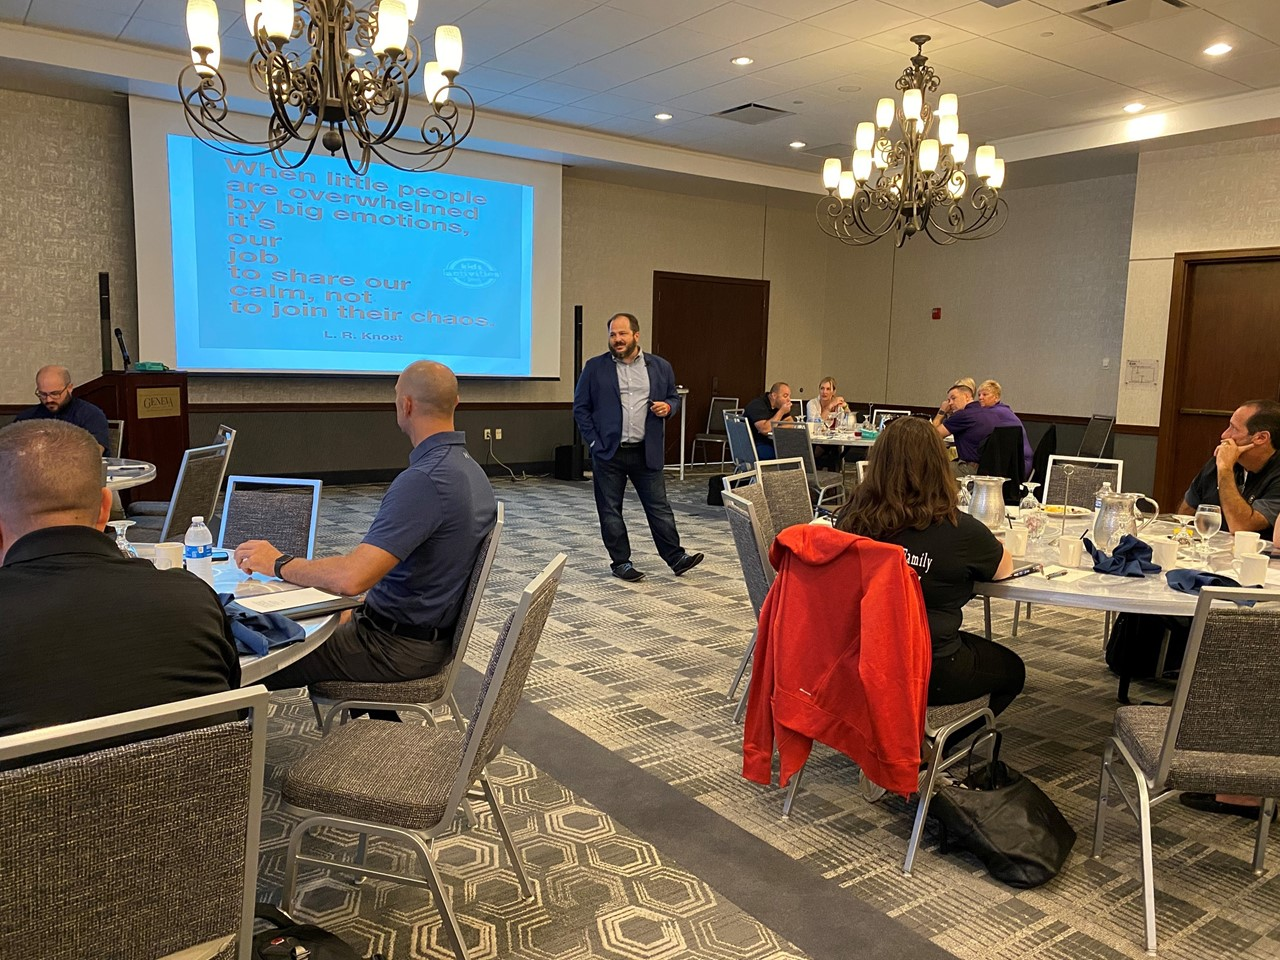 """Keynote R. Keeth Matheny discusses """"Finding & Sharing Calm & Chaos"""" at the 2021 Trumbull County Administrators' Conference."""